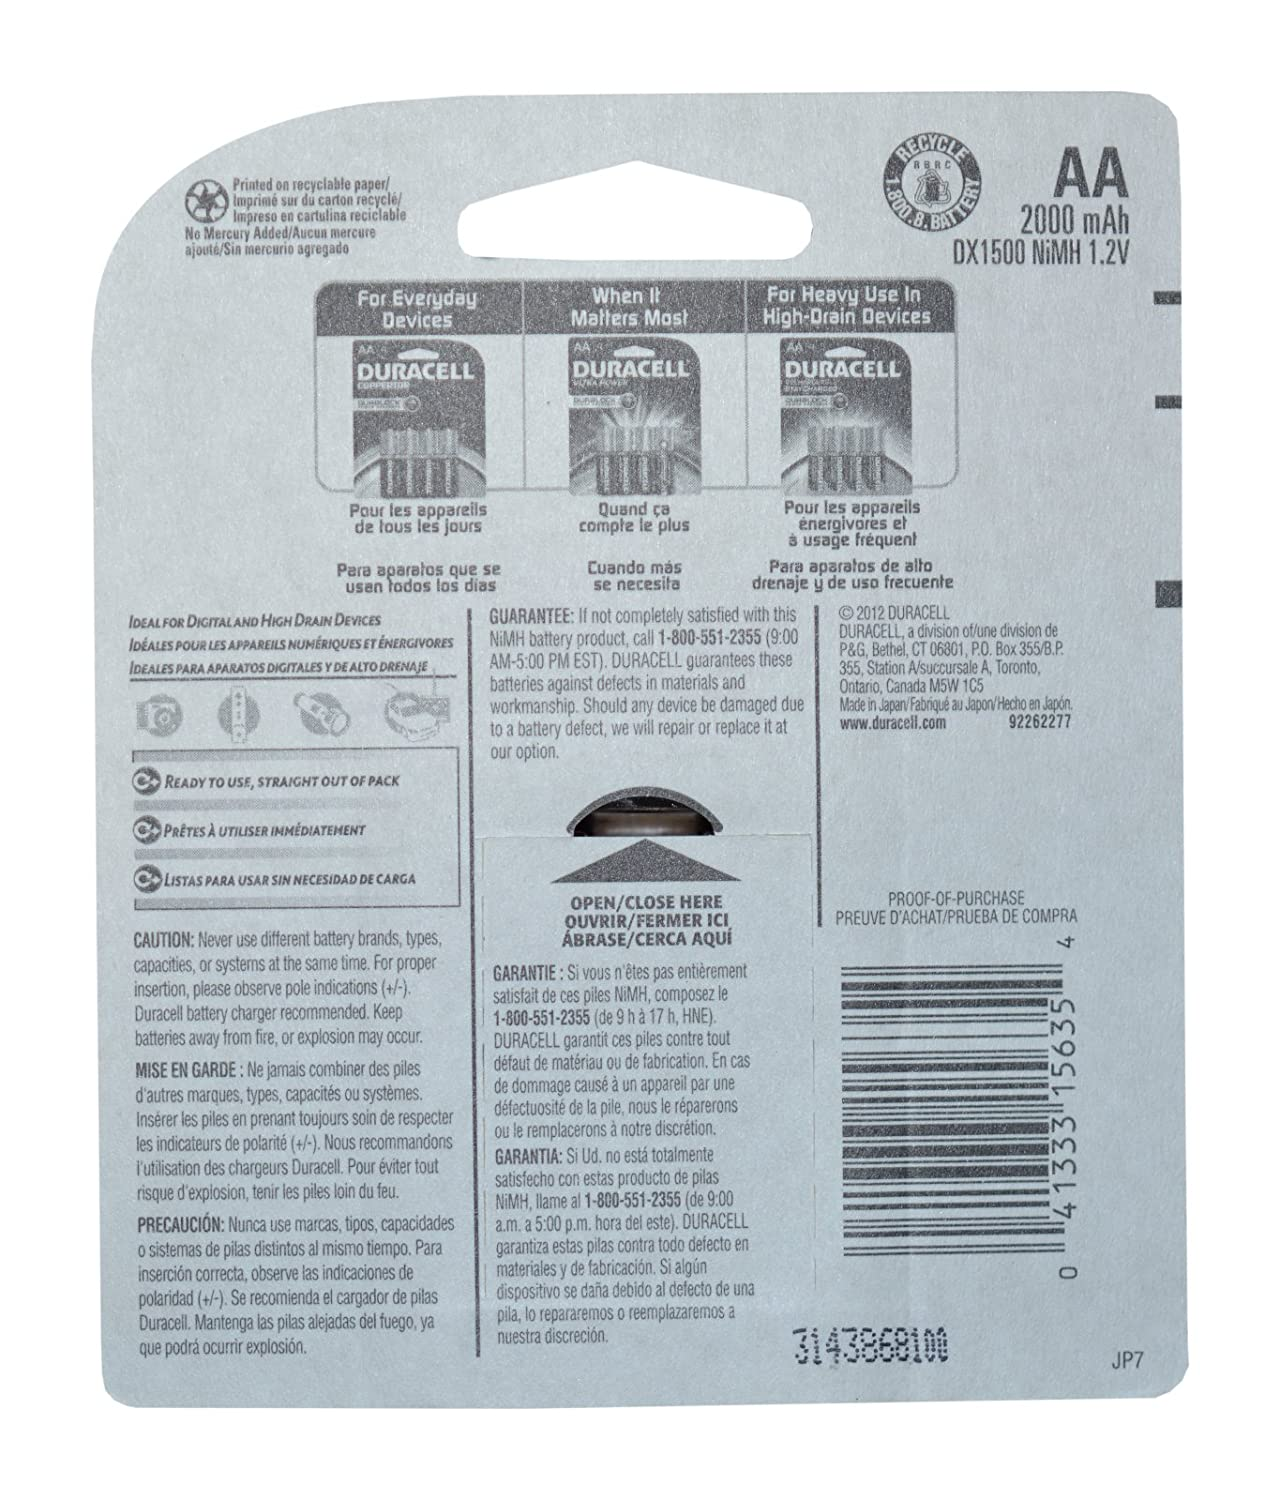 Amazoncom Duracell Rechargeable Long Life AA Batteries In A - Us zip code aa